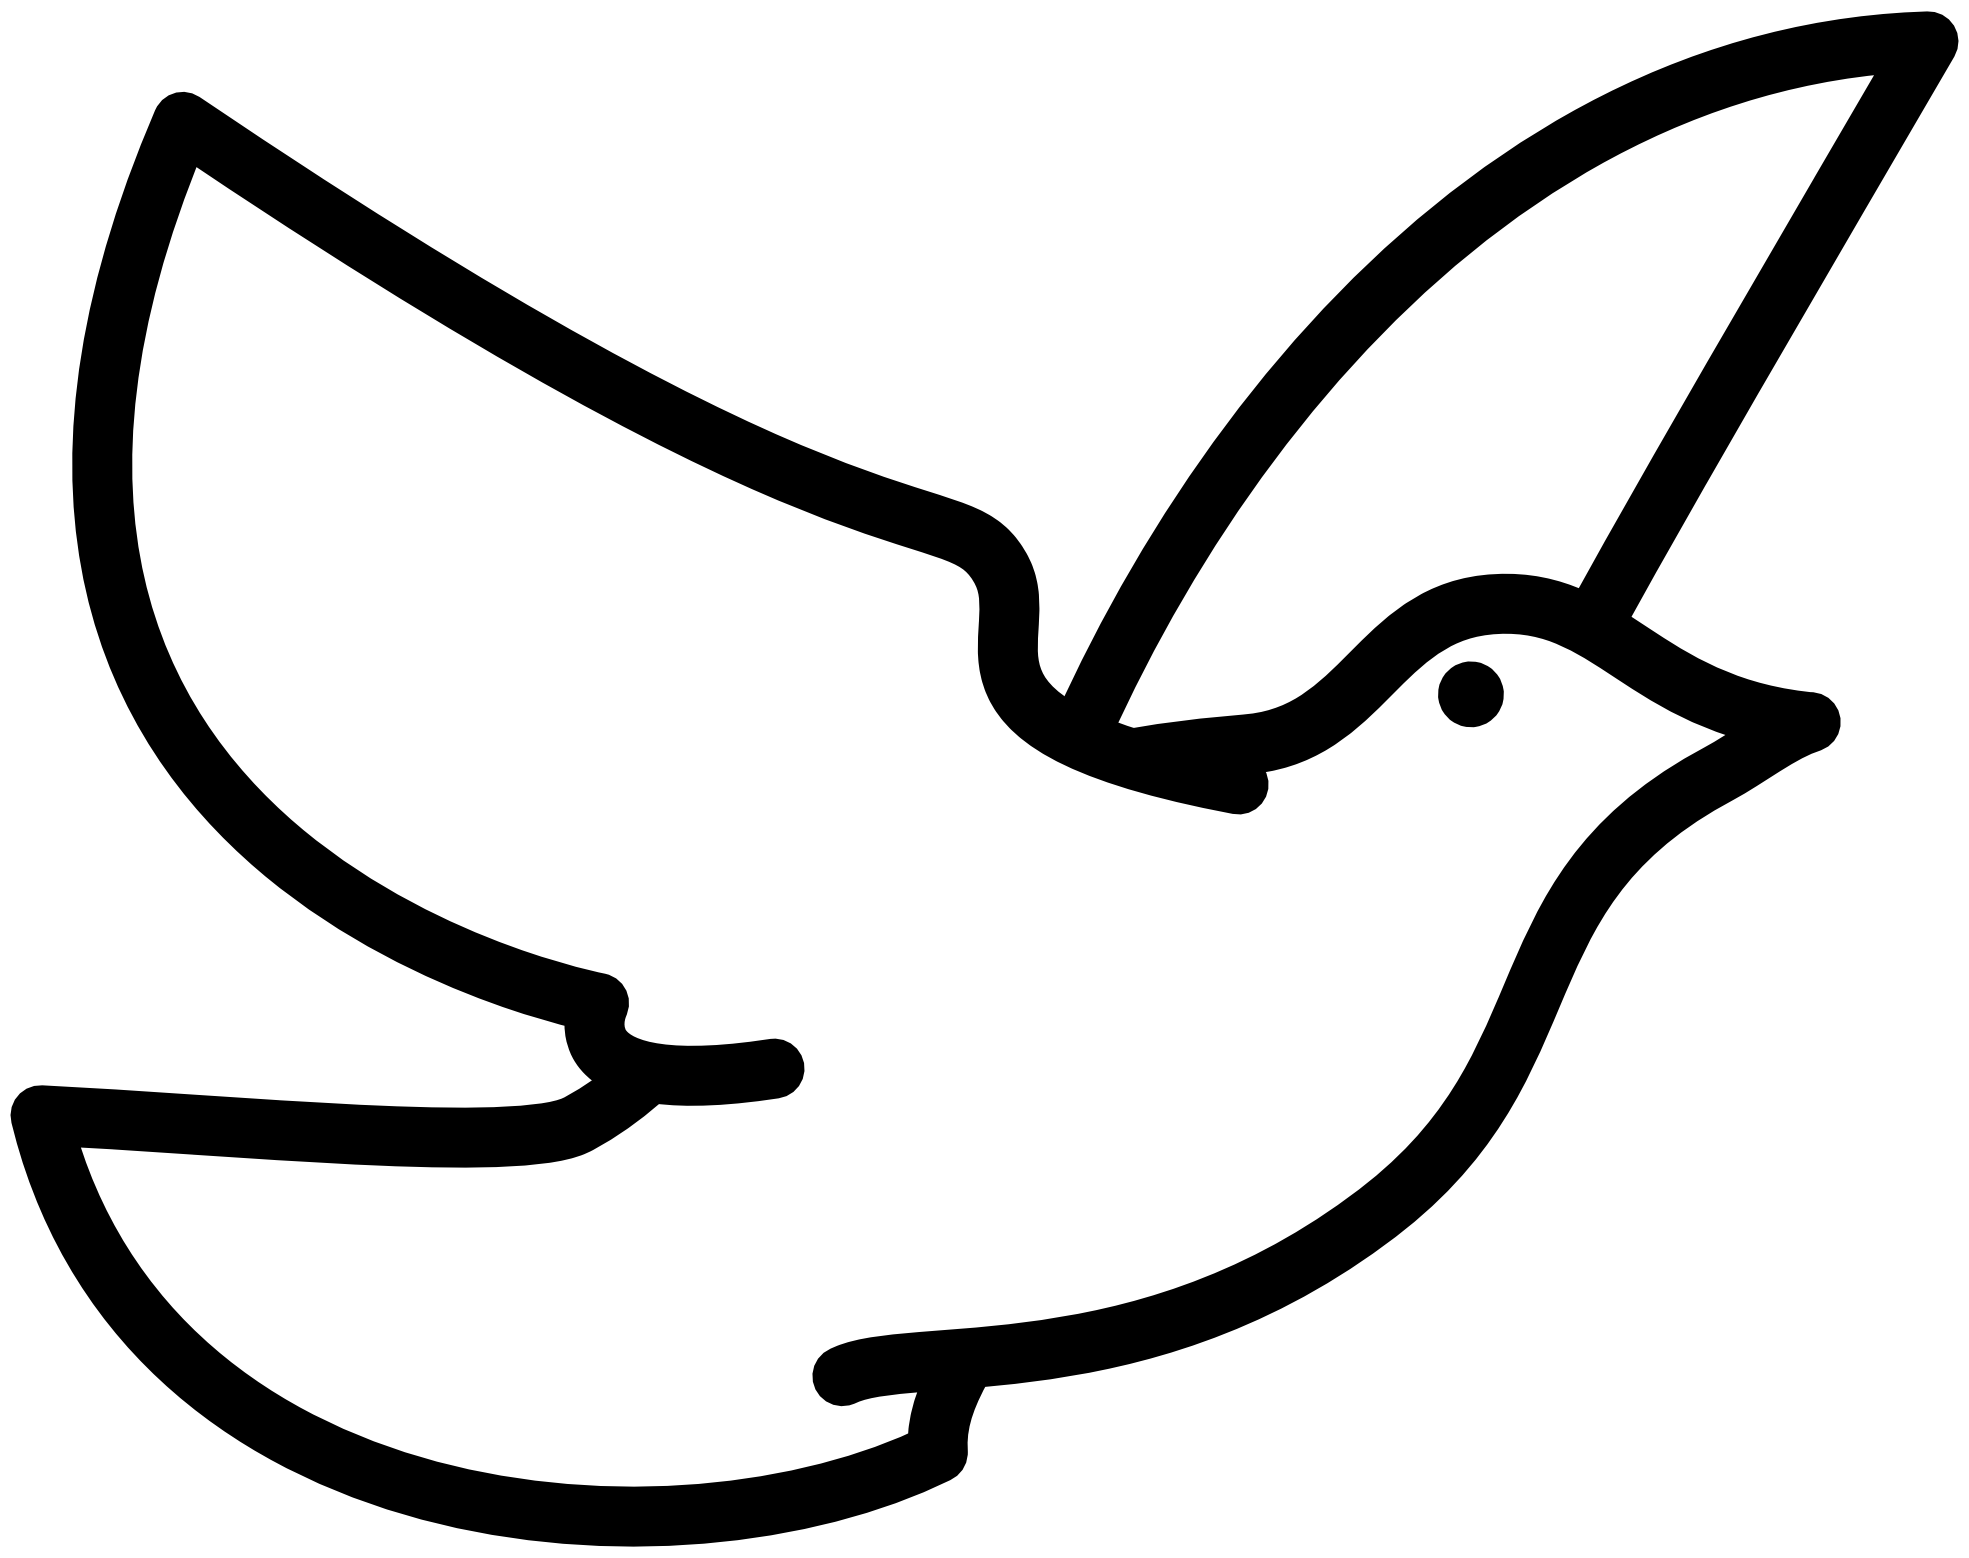 Images For > Cute Birds Clipart Black And White.